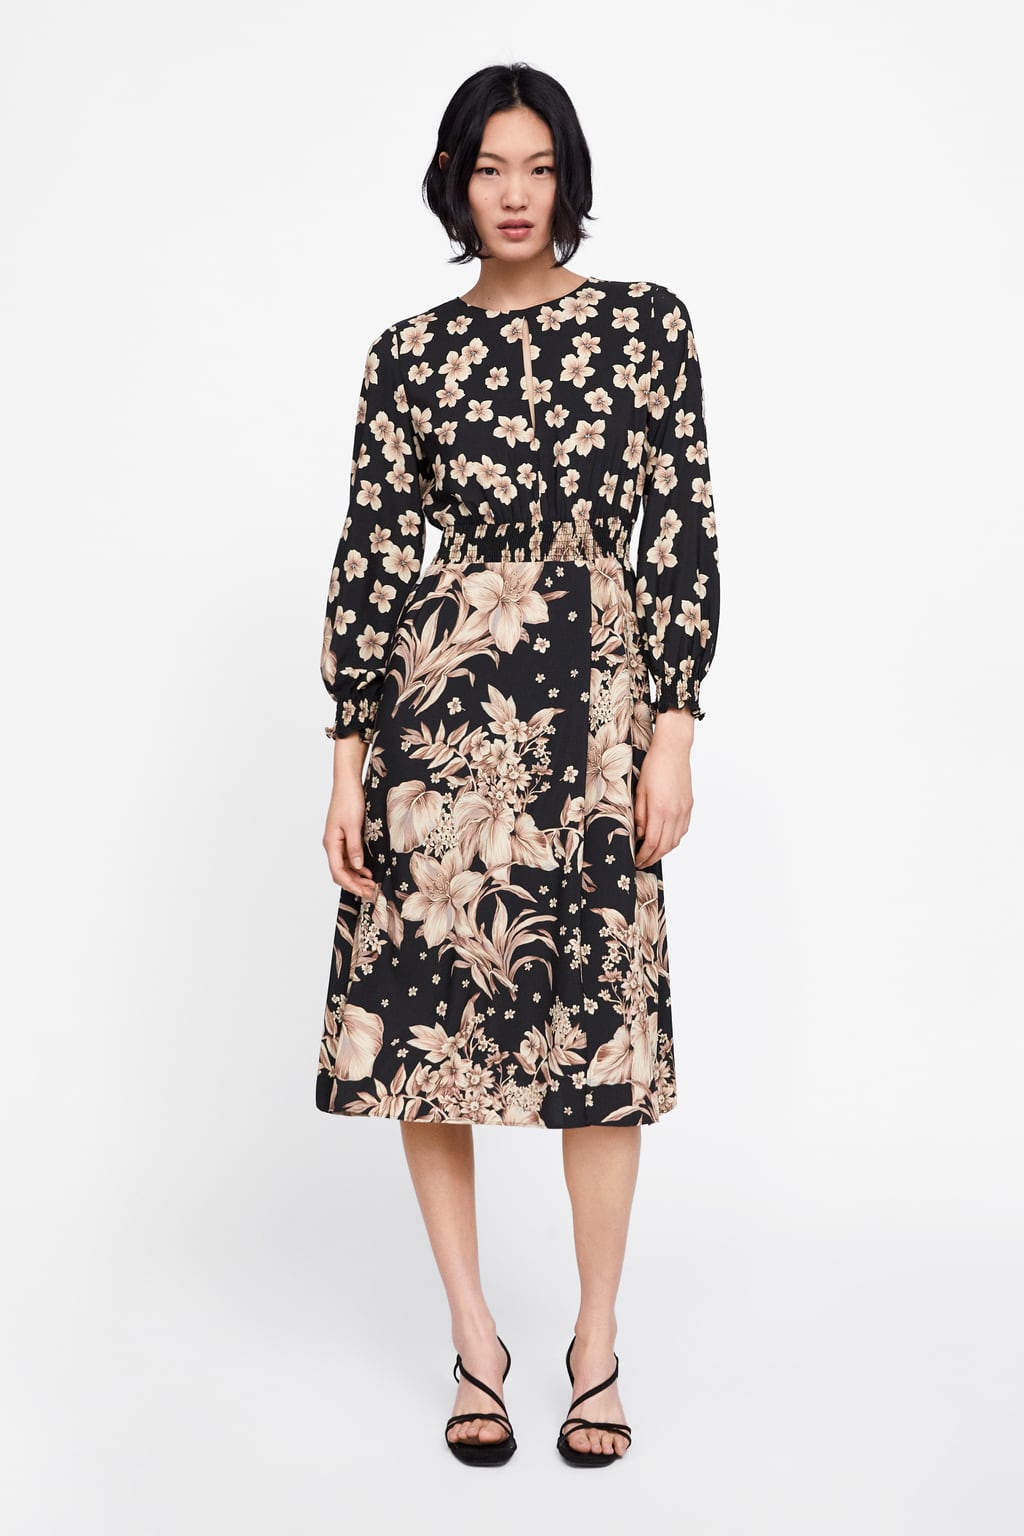 Floral print dress from Zara